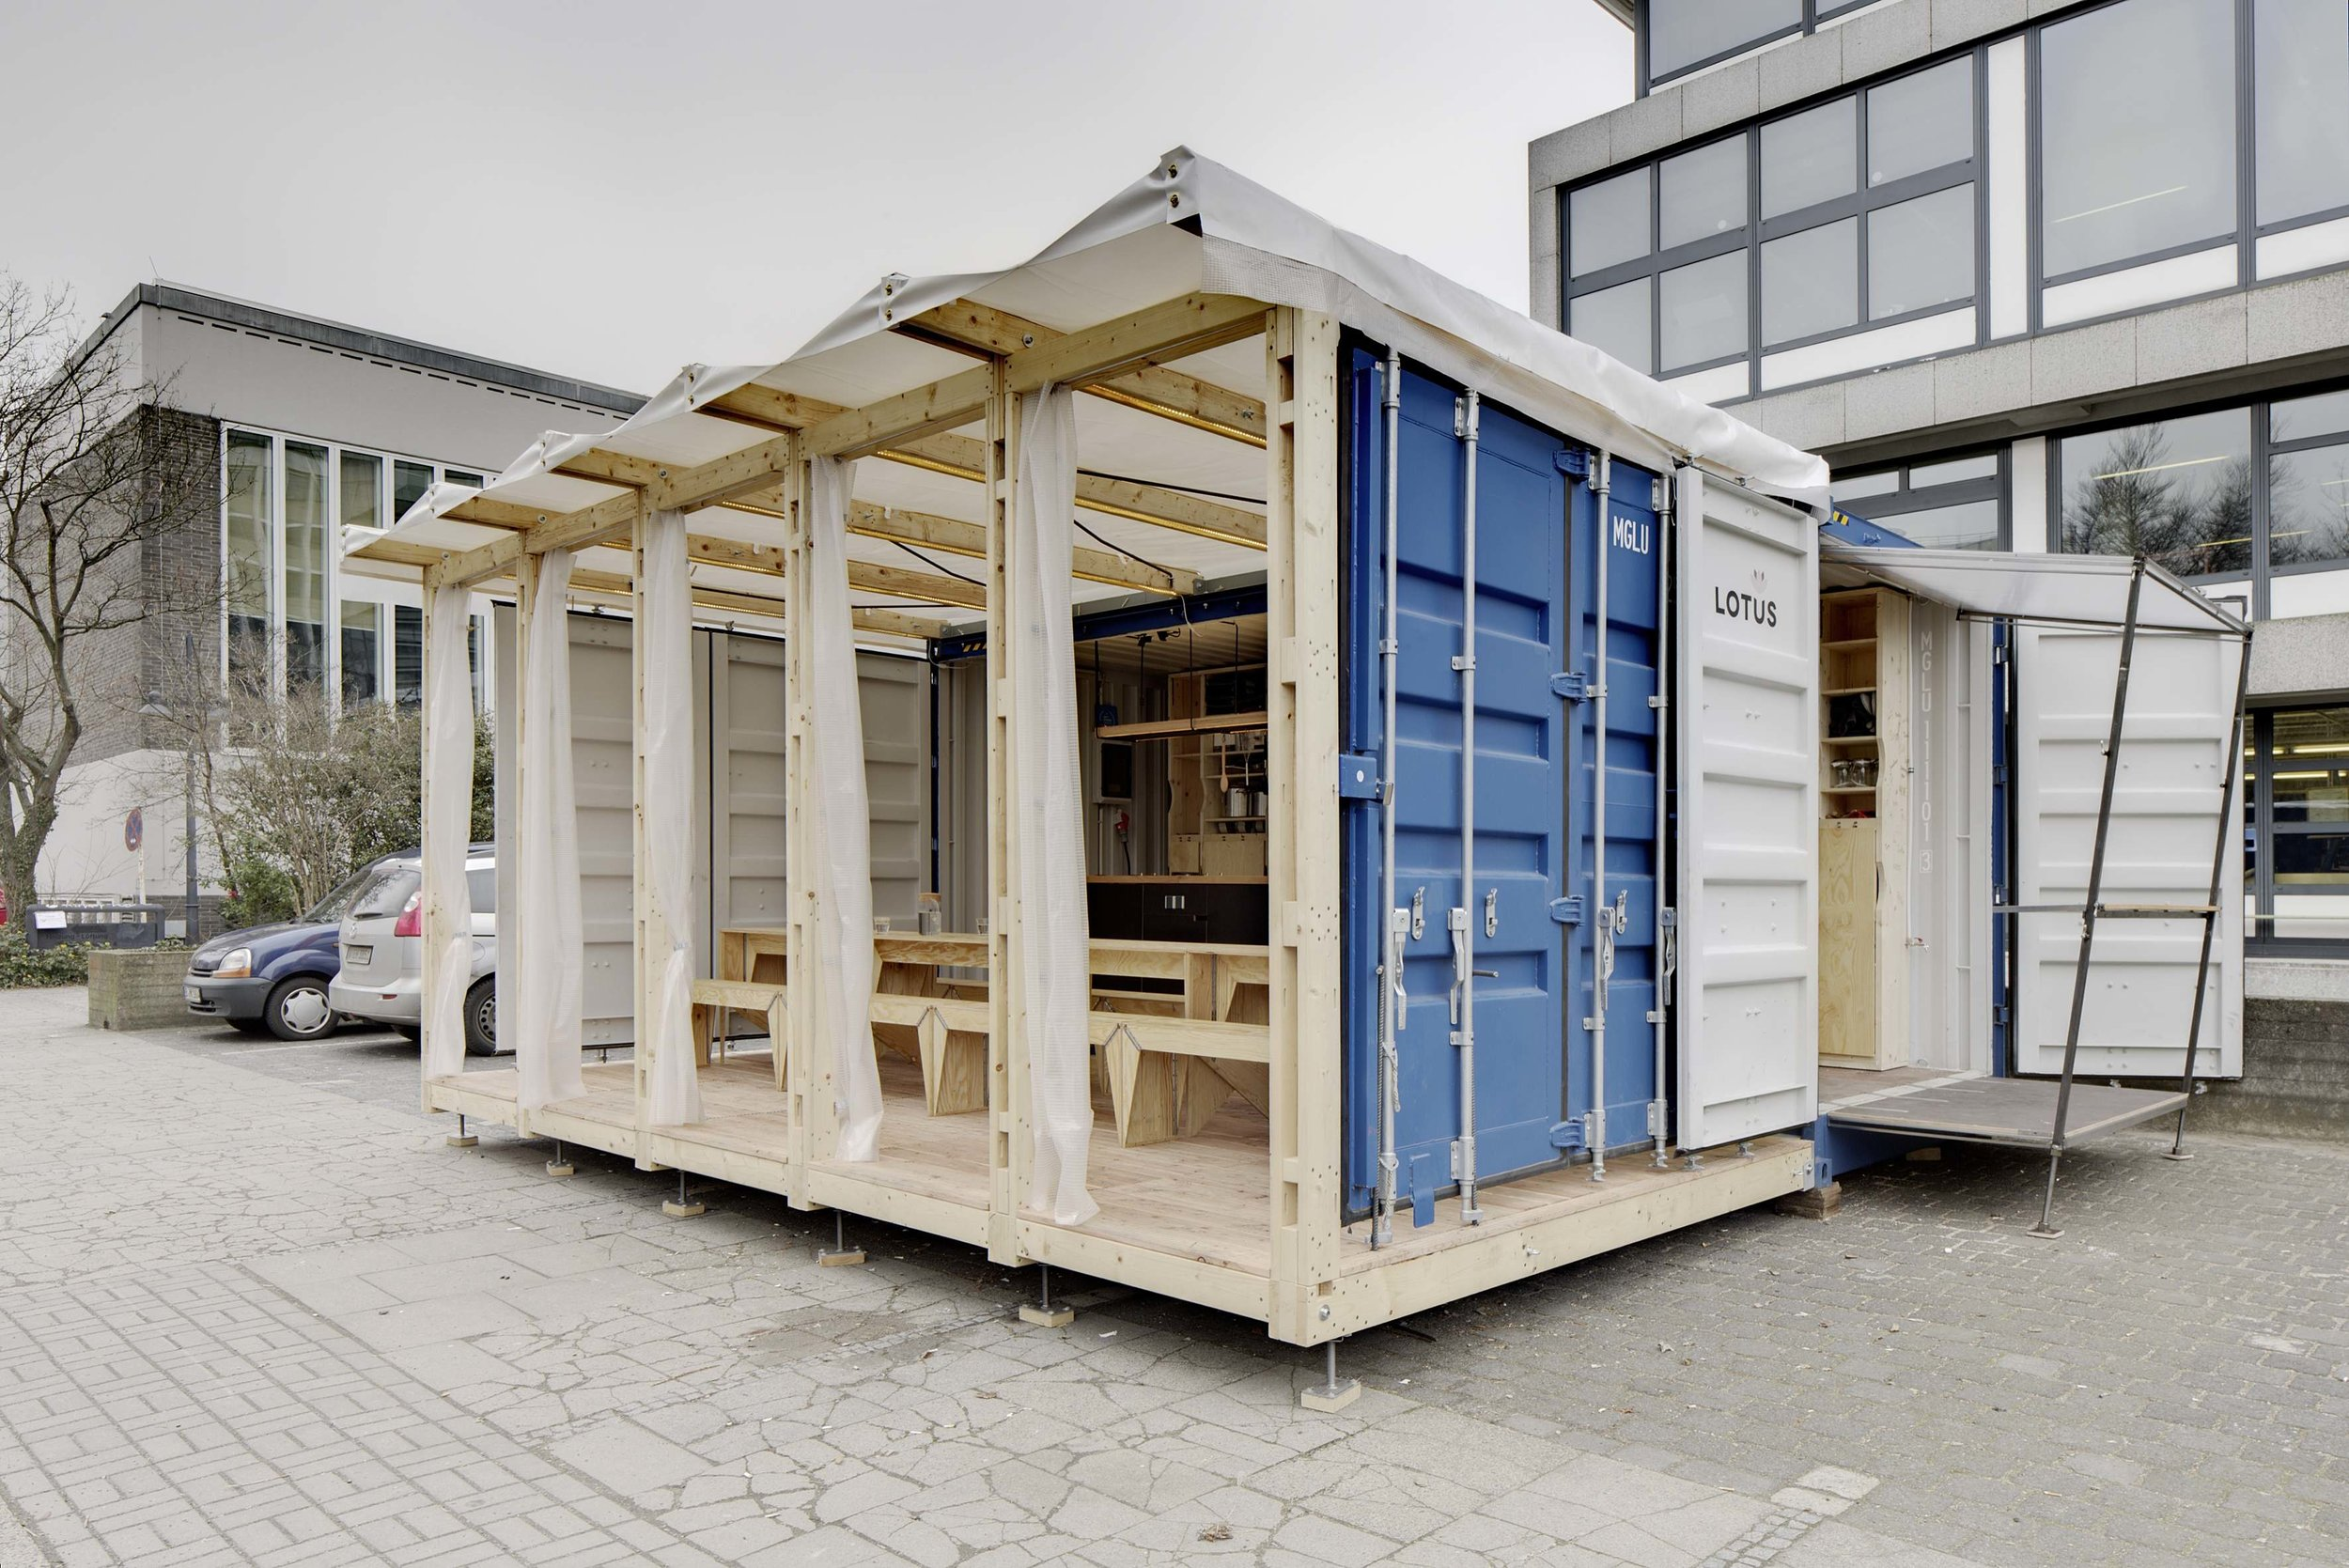 005_Container frontal view_CR.jpg